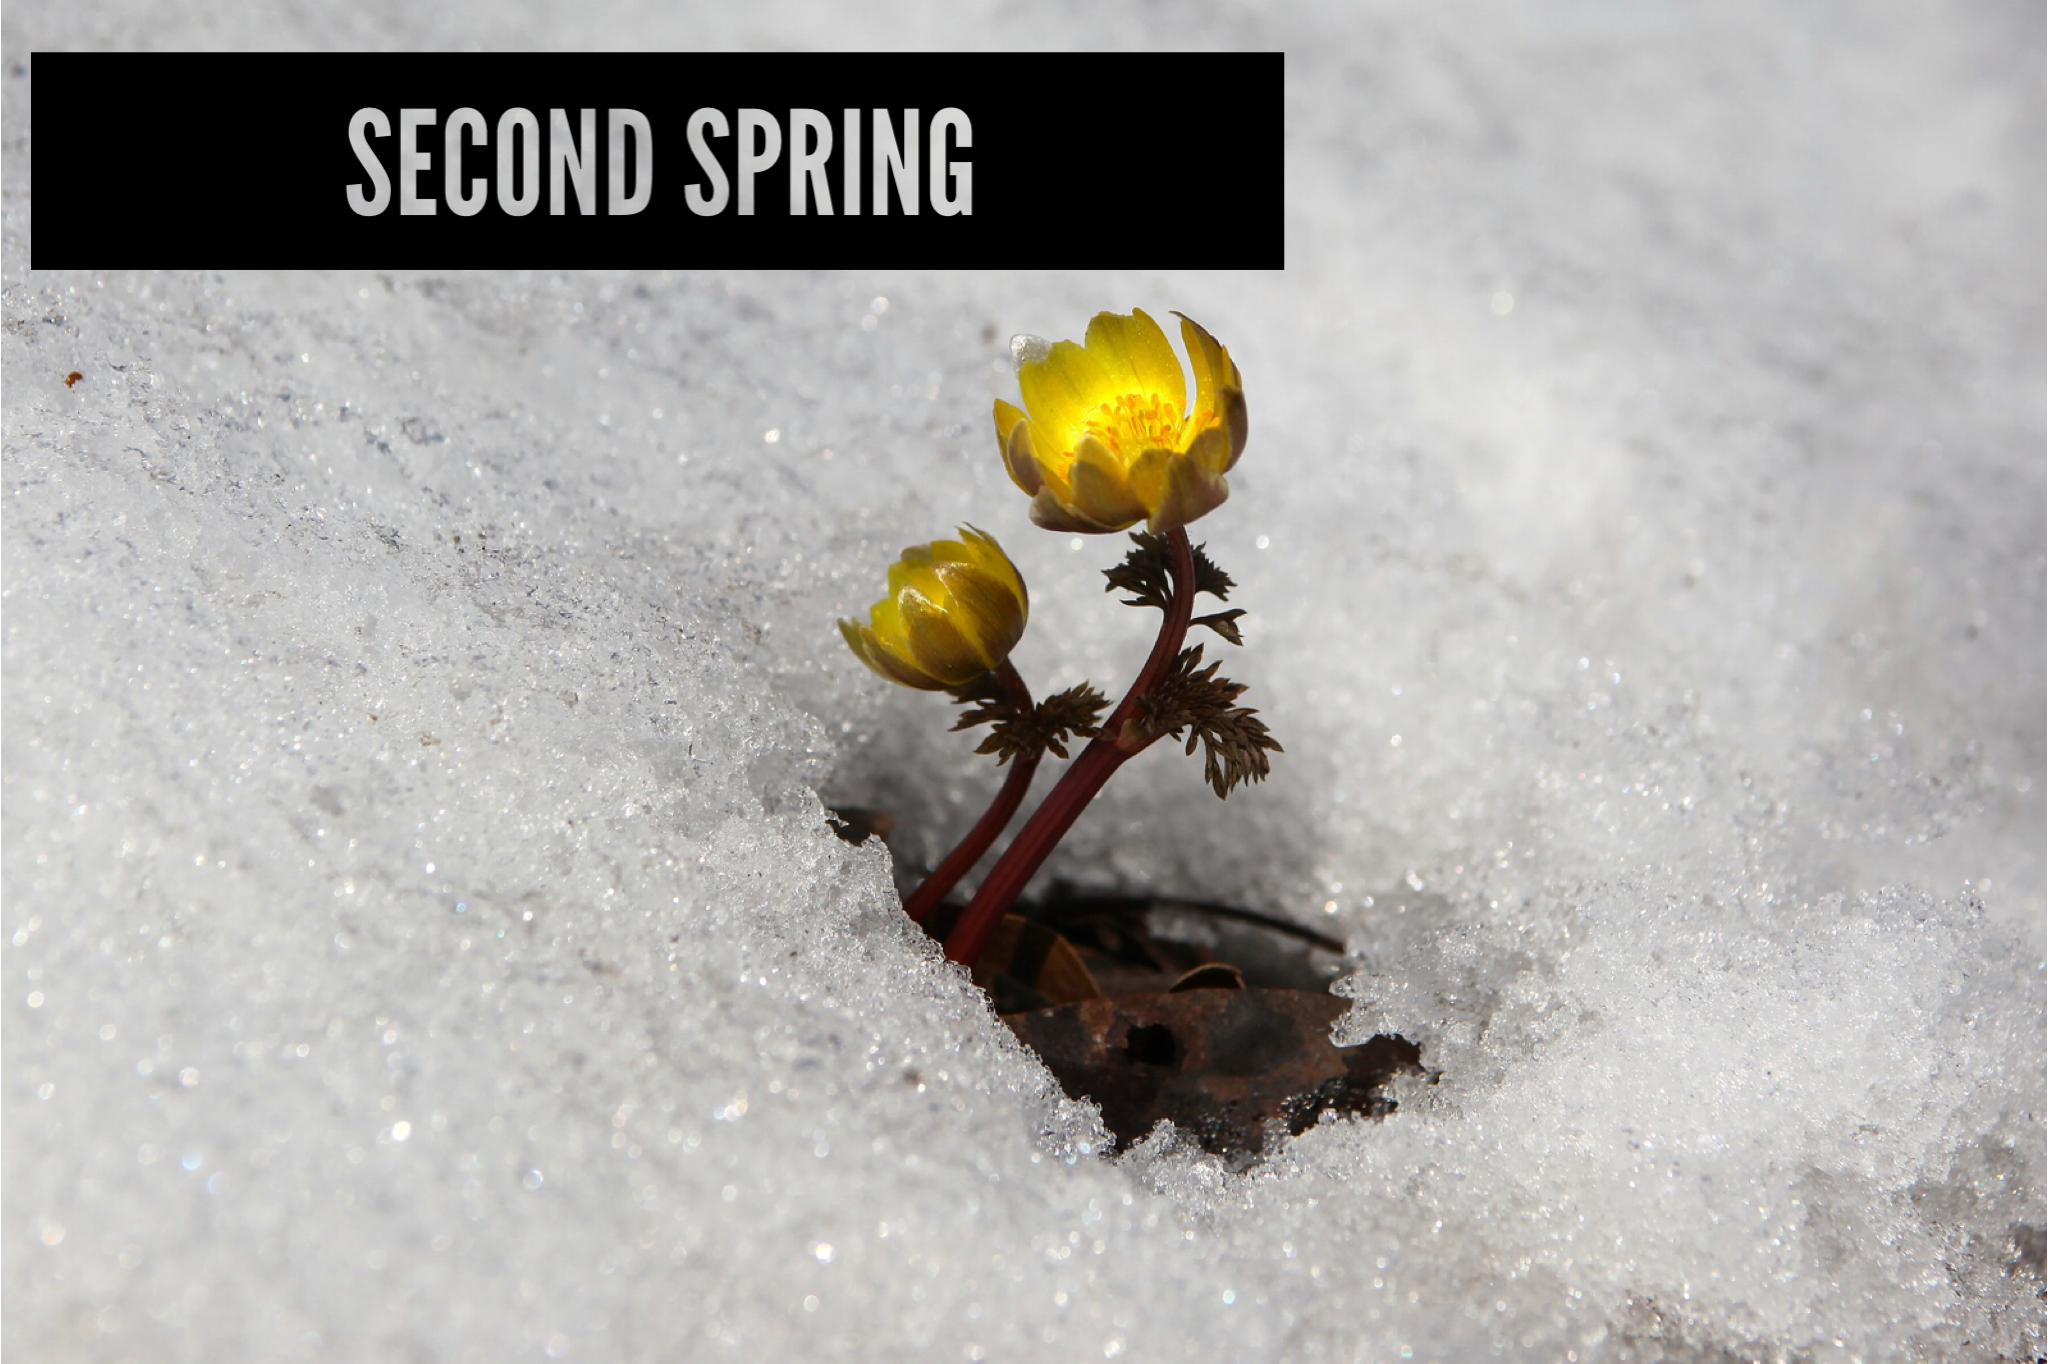 Your Menopause Perspective: Sign of Aging or Second Spring?